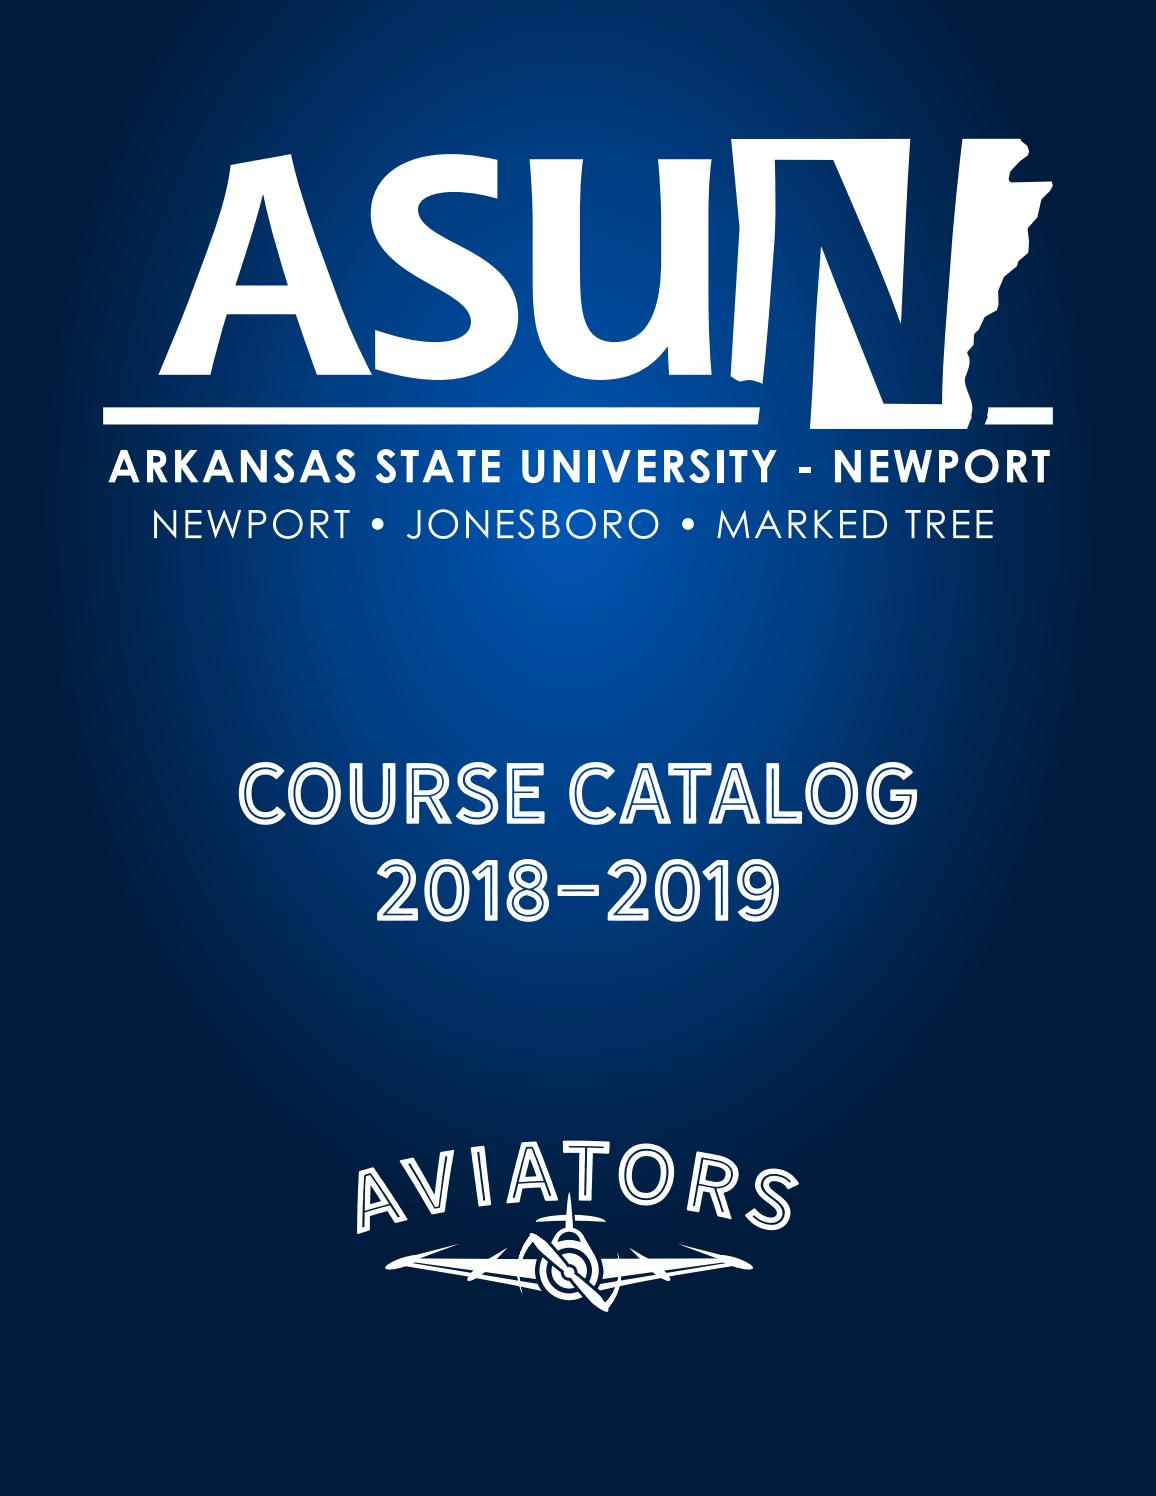 Fall Final Course Catalog By Asunewport Issuu Circuit Shop Is An Easy To Use Graphical Cad Tool Allow Simple